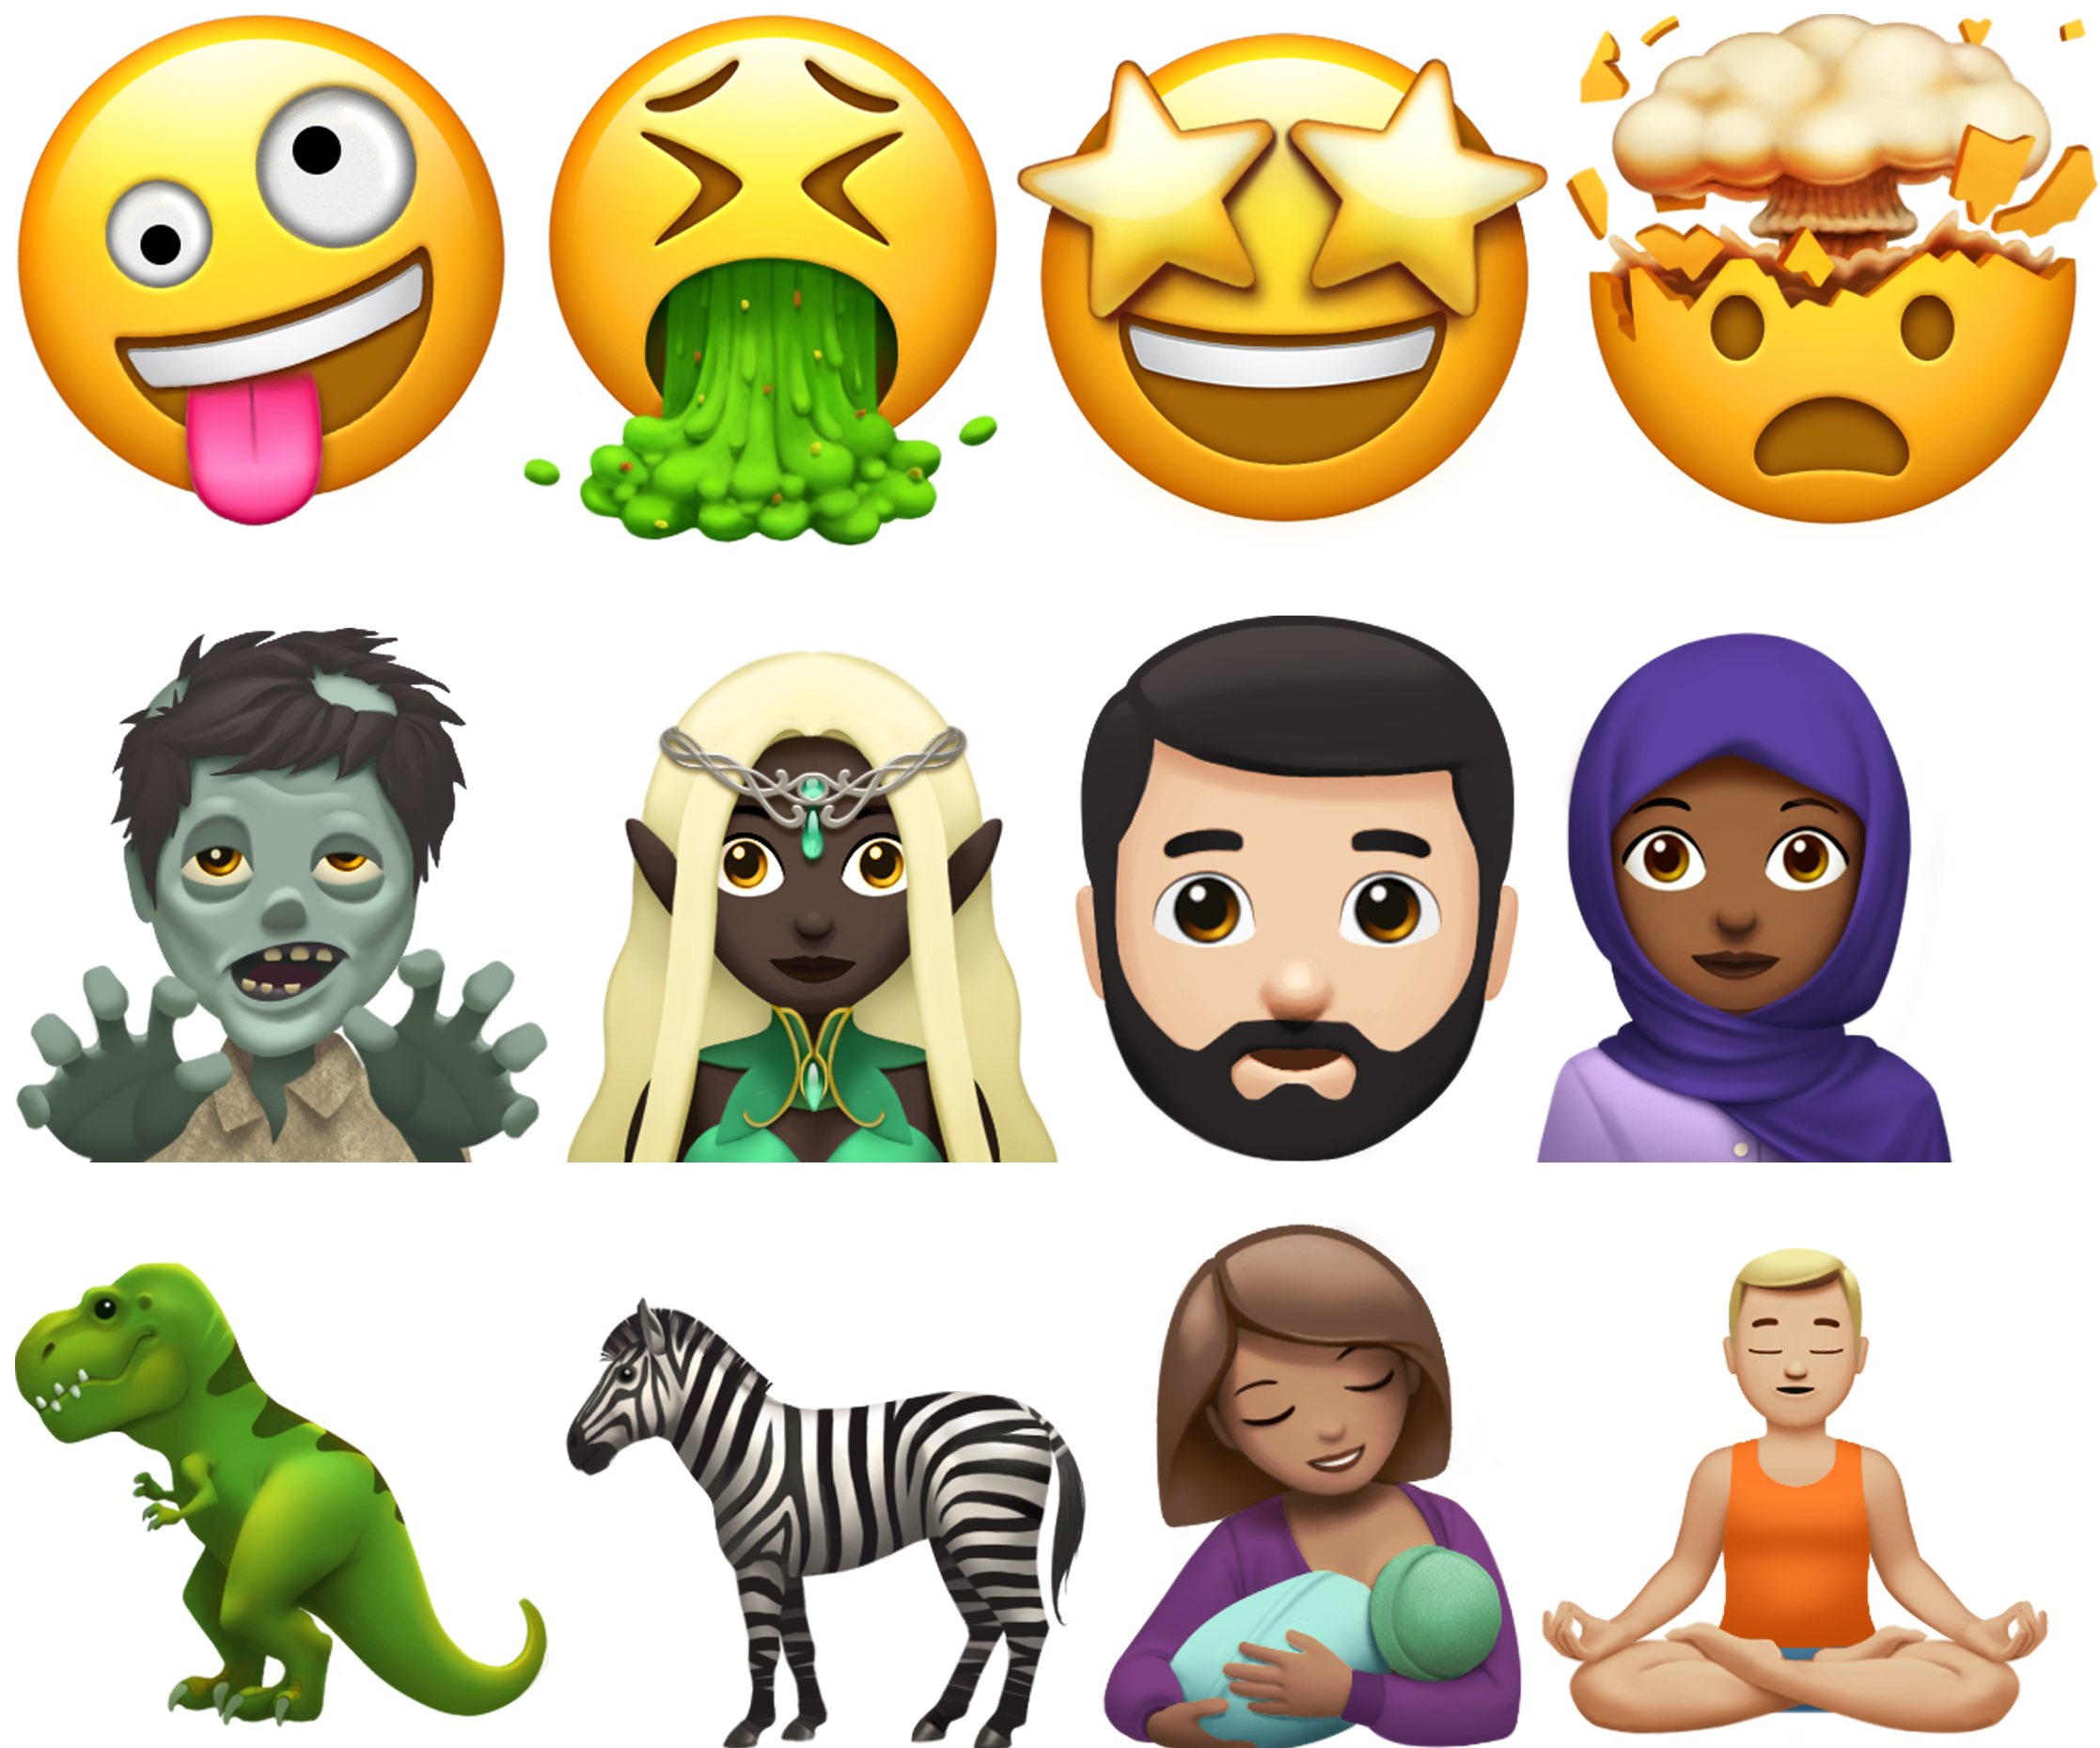 Here are some of new emoji coming to iPhone, iPad, Mac and